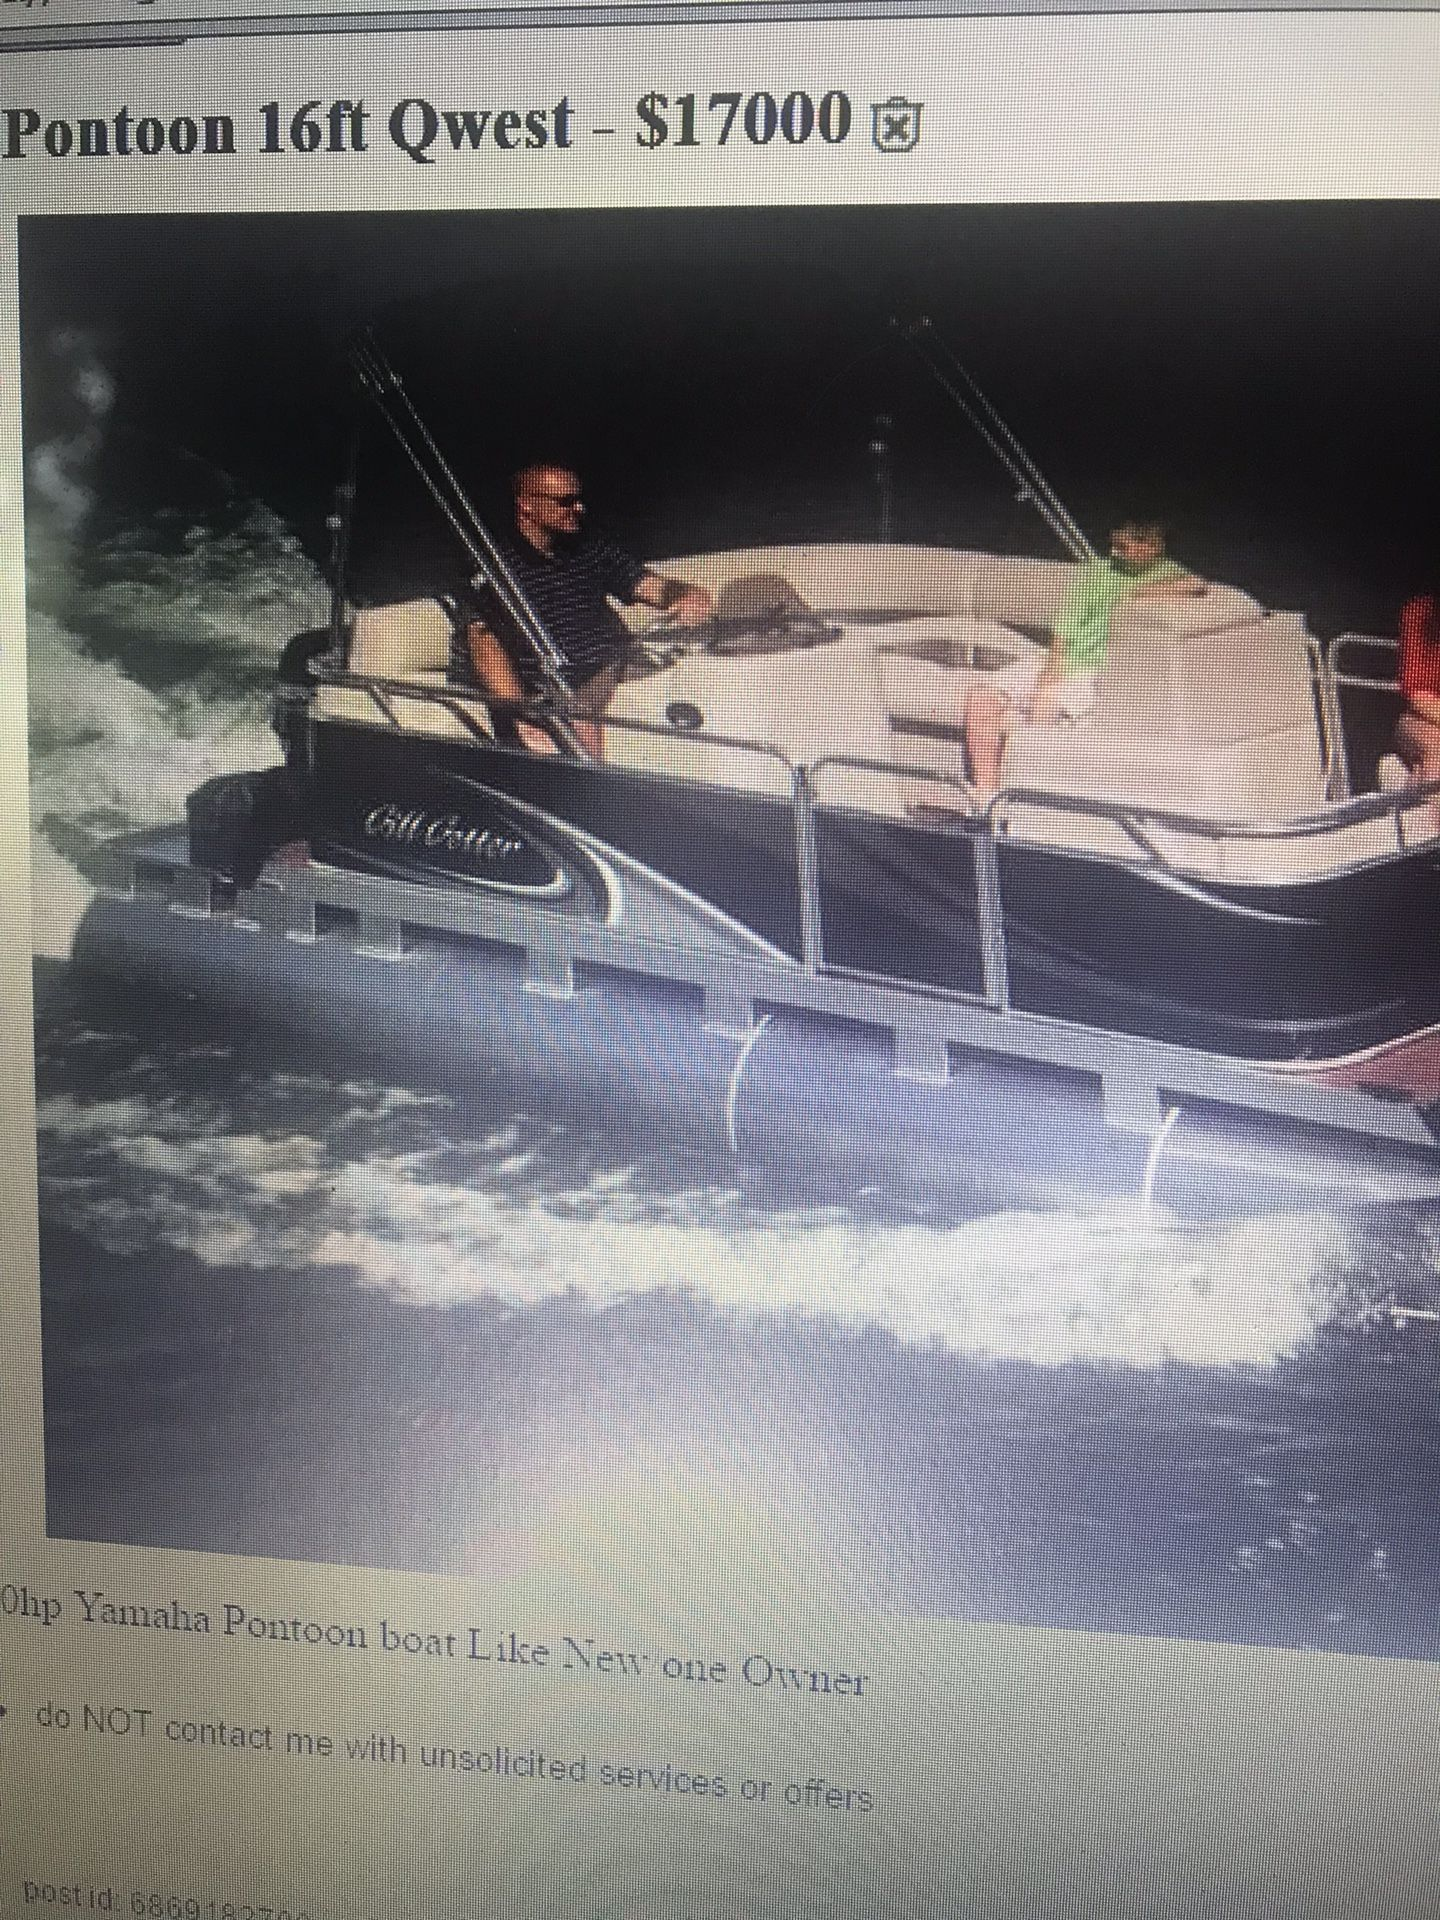 2016 Qwest pontoon boat. 16 ft. and still like new. Has a 50 HP Yamaha motor. I have enjoyed my boat but, I have retired and moving to FL. $17,000